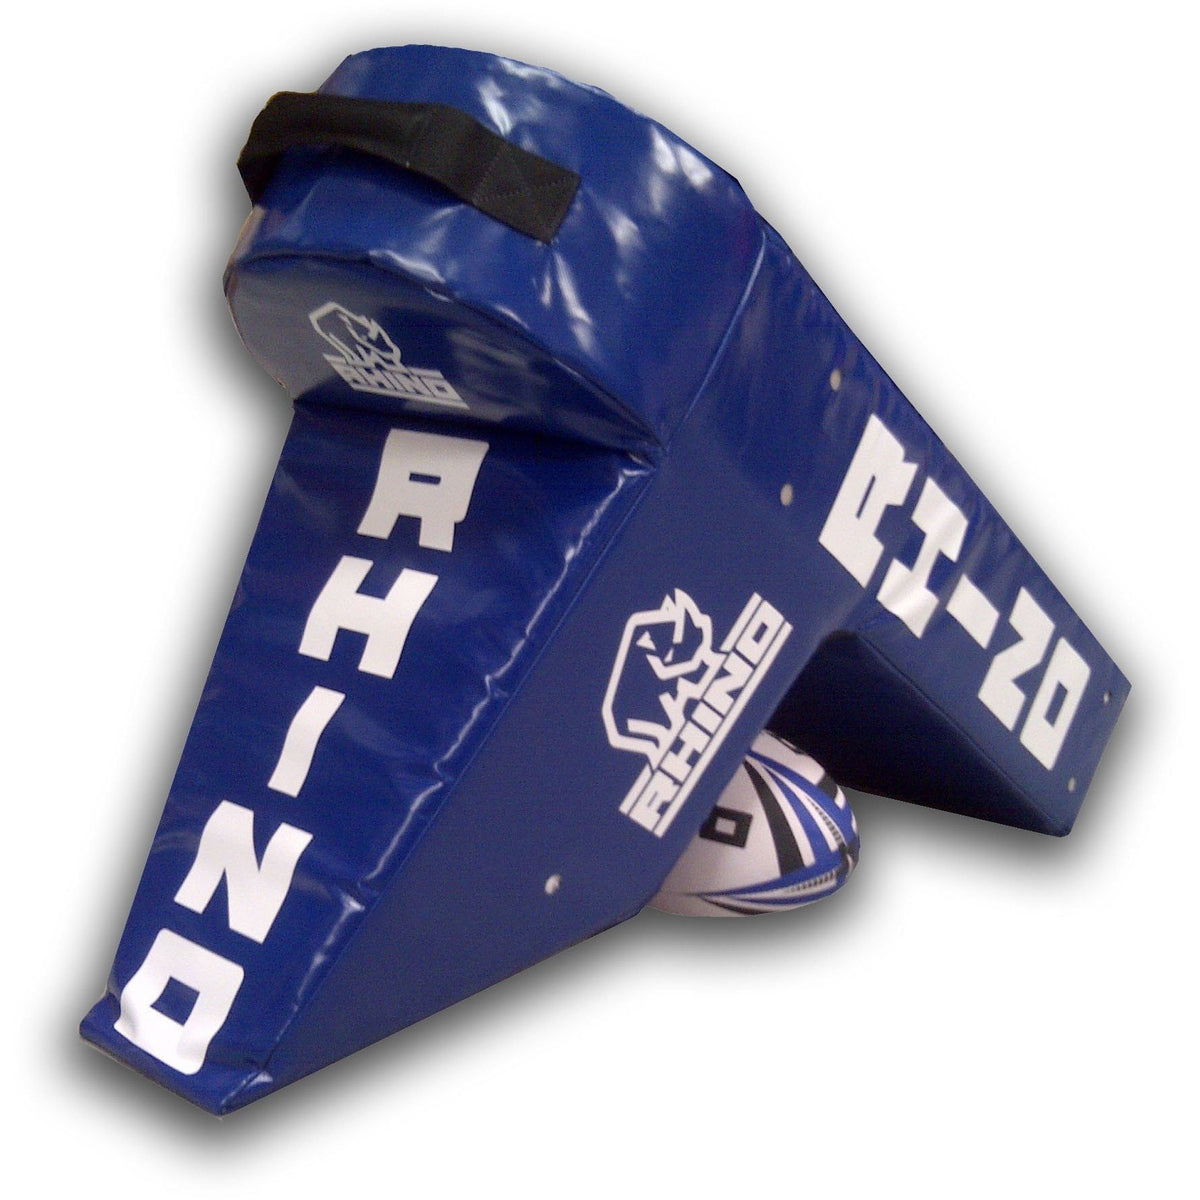 Rhino Rugby Single Jackal Bag - www.therugbyshop.com